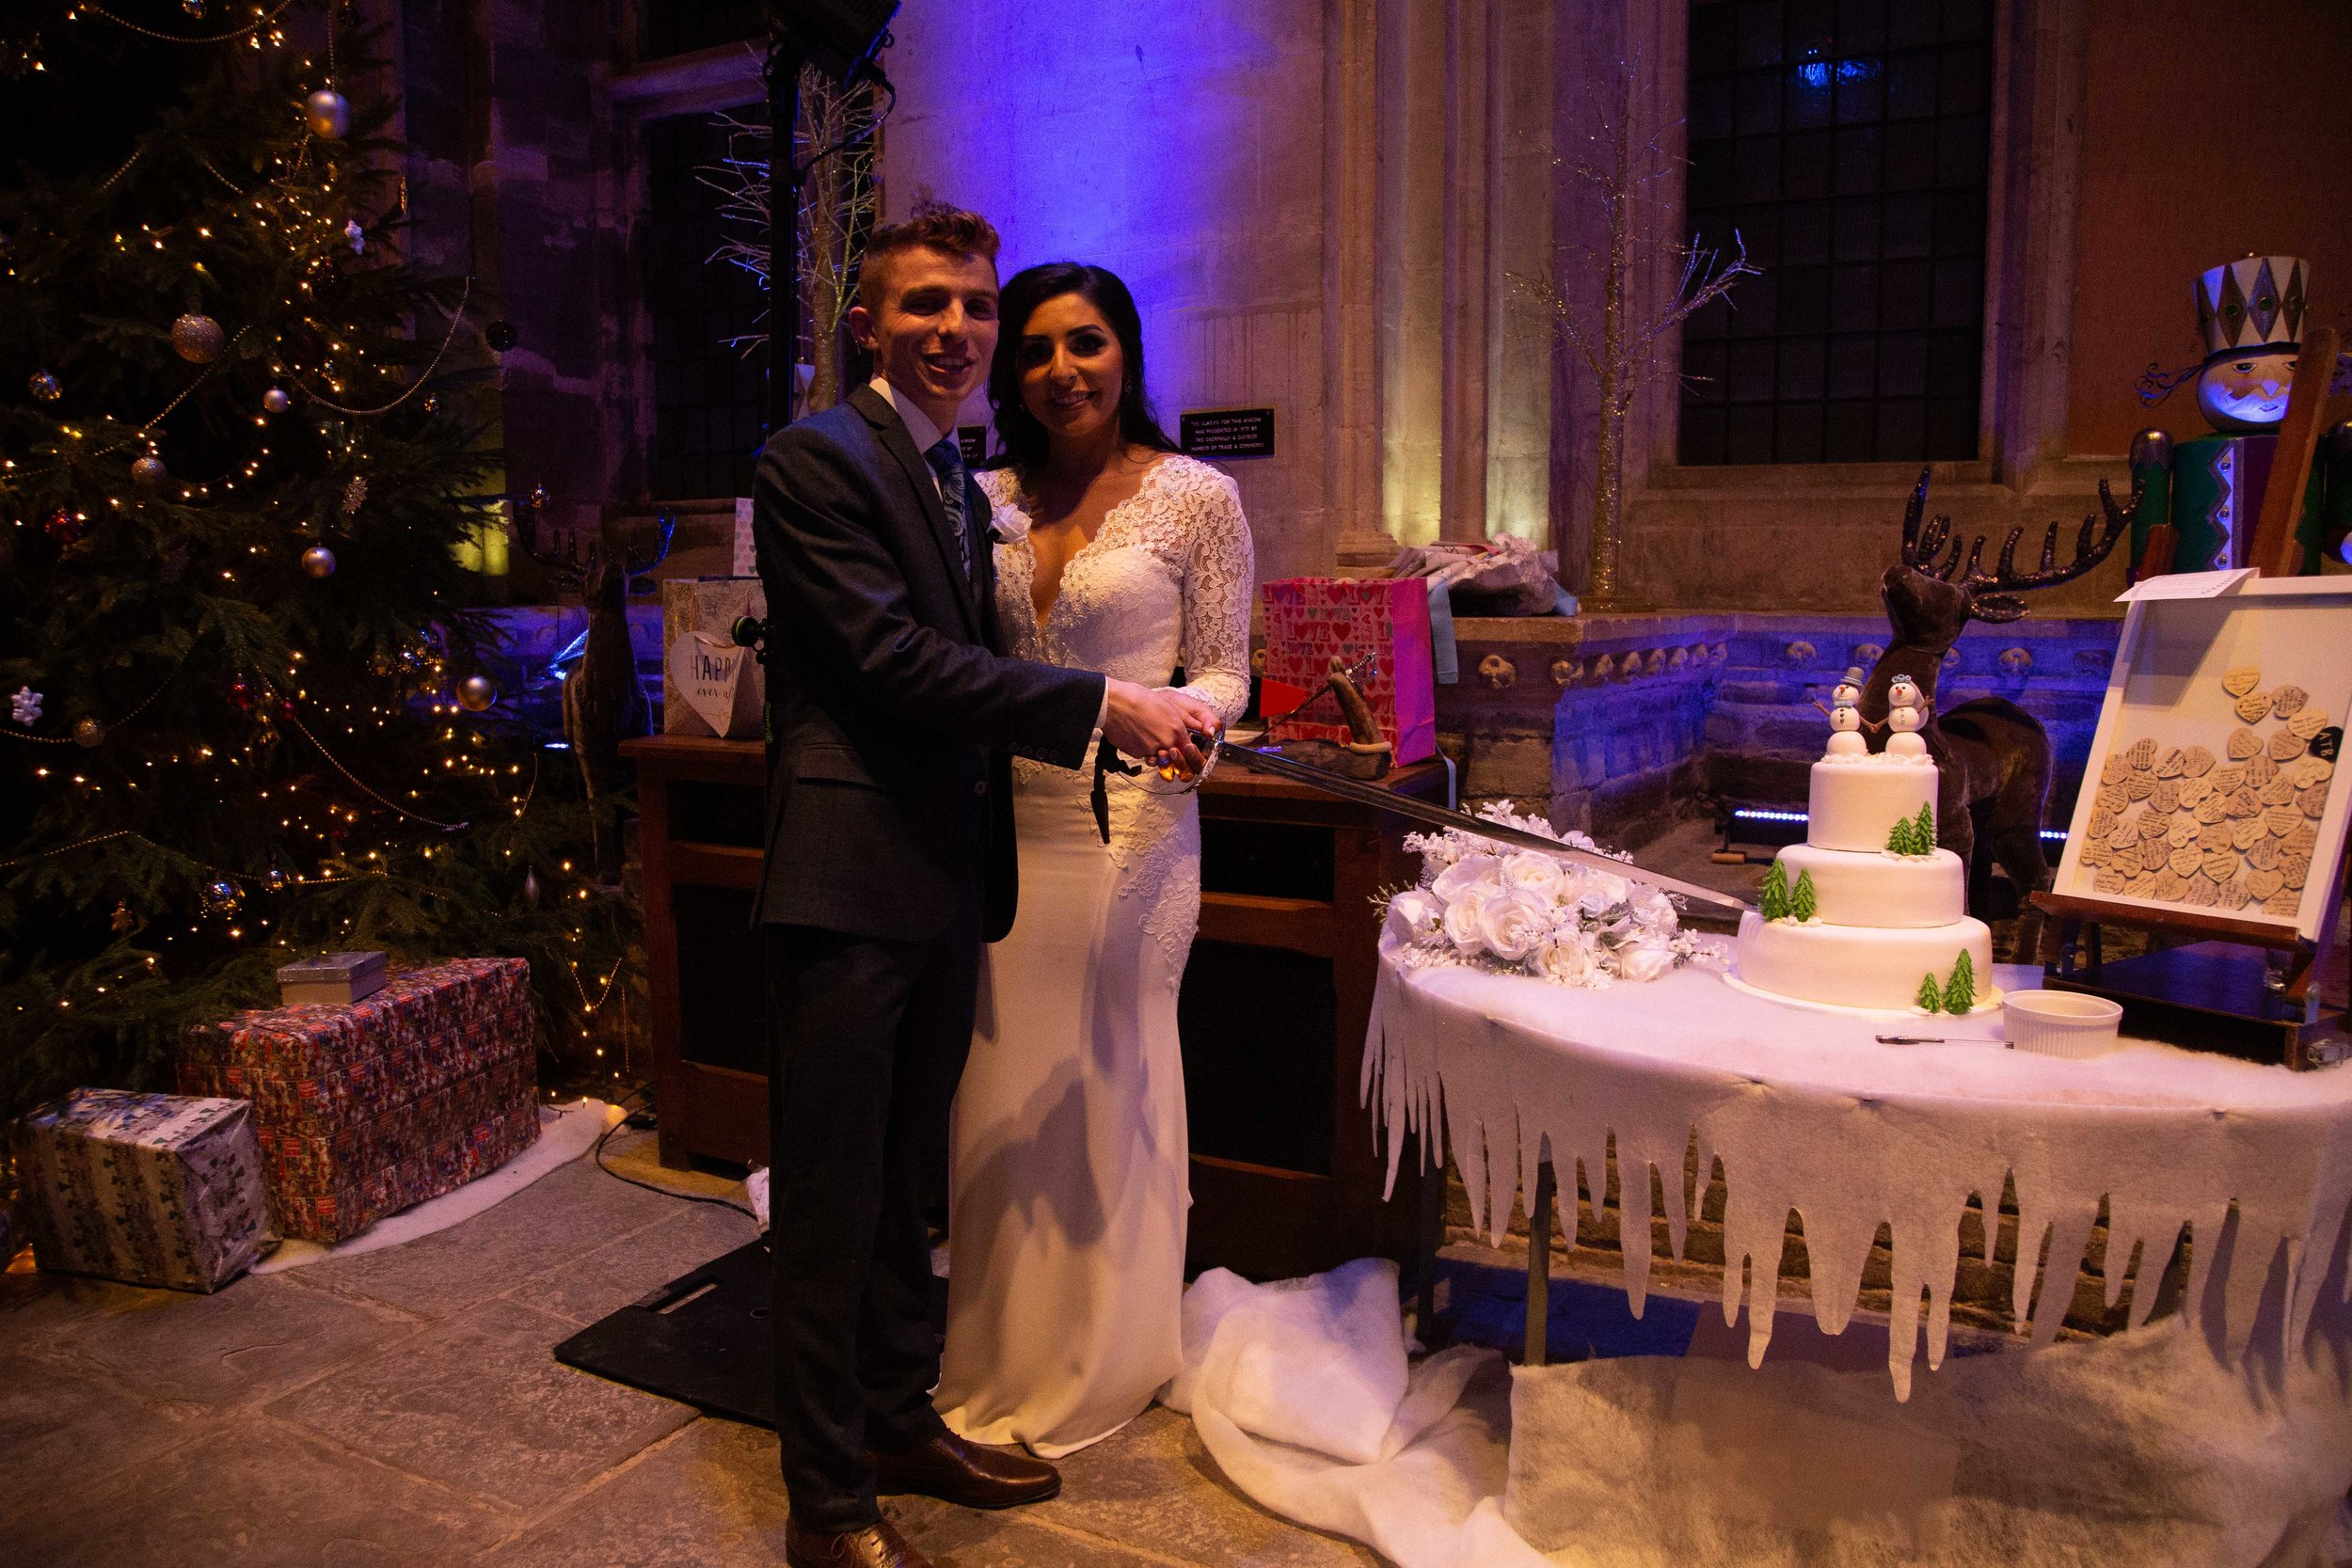 Bride and groom cutting the cake with a sword at Caerphilly Castle